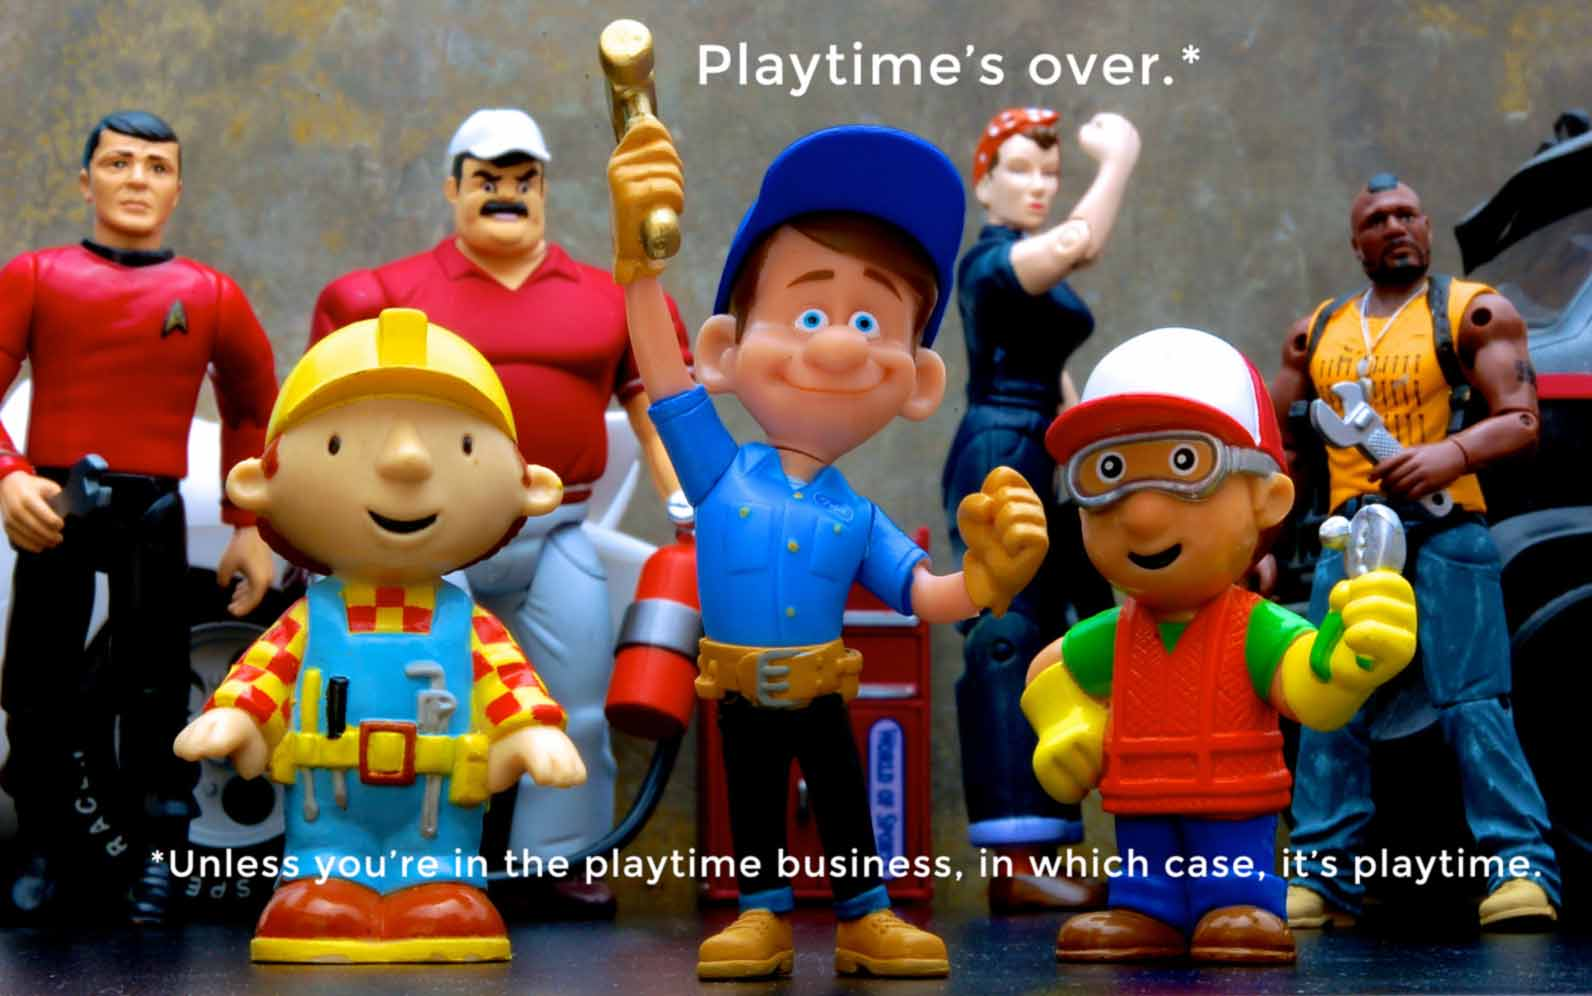 15-02-20-playtime-is-over